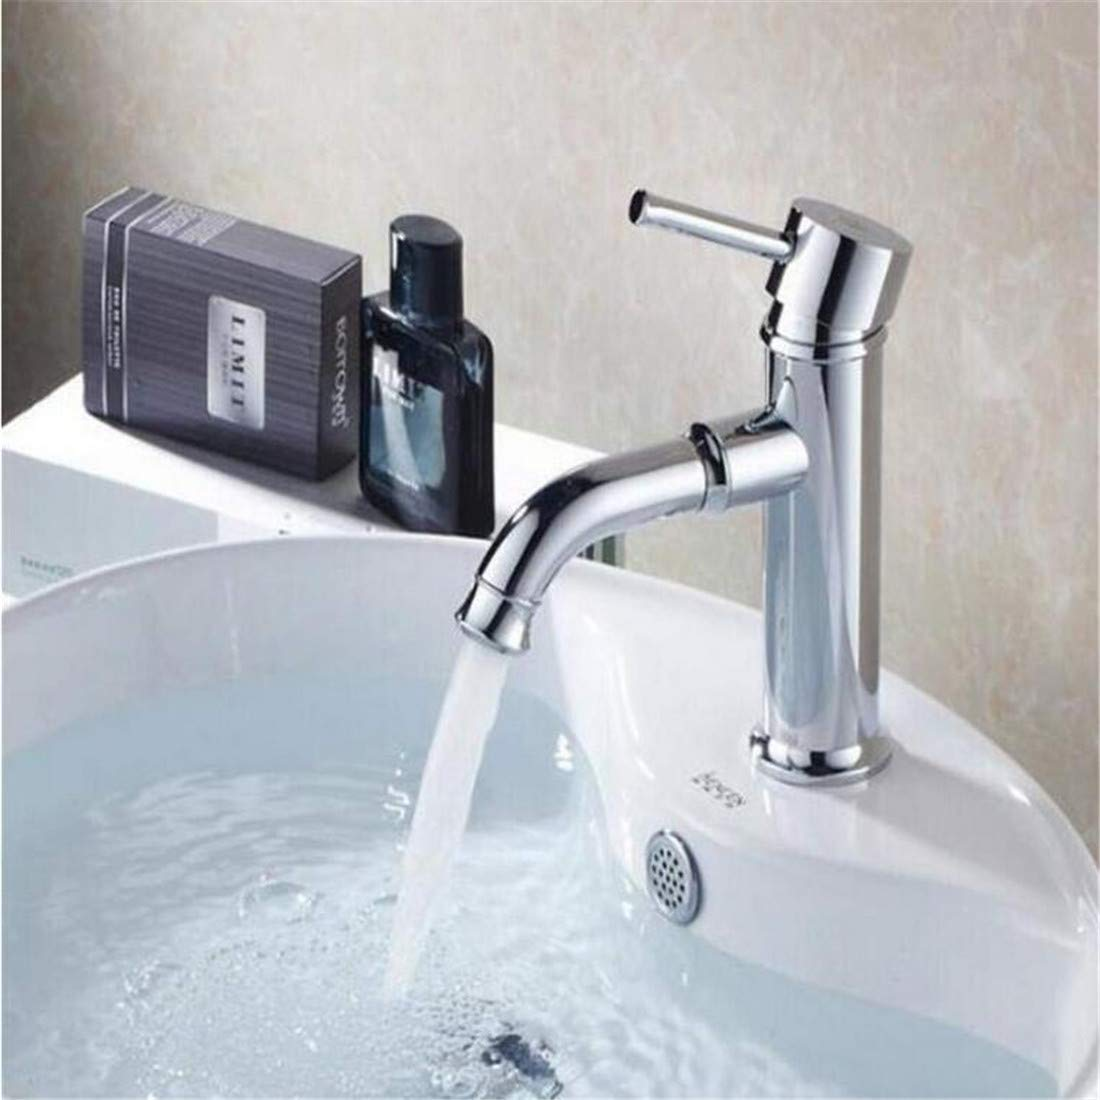 Retro Hot and Cold Faucet Luxury Mixer Platingfaucets Basin